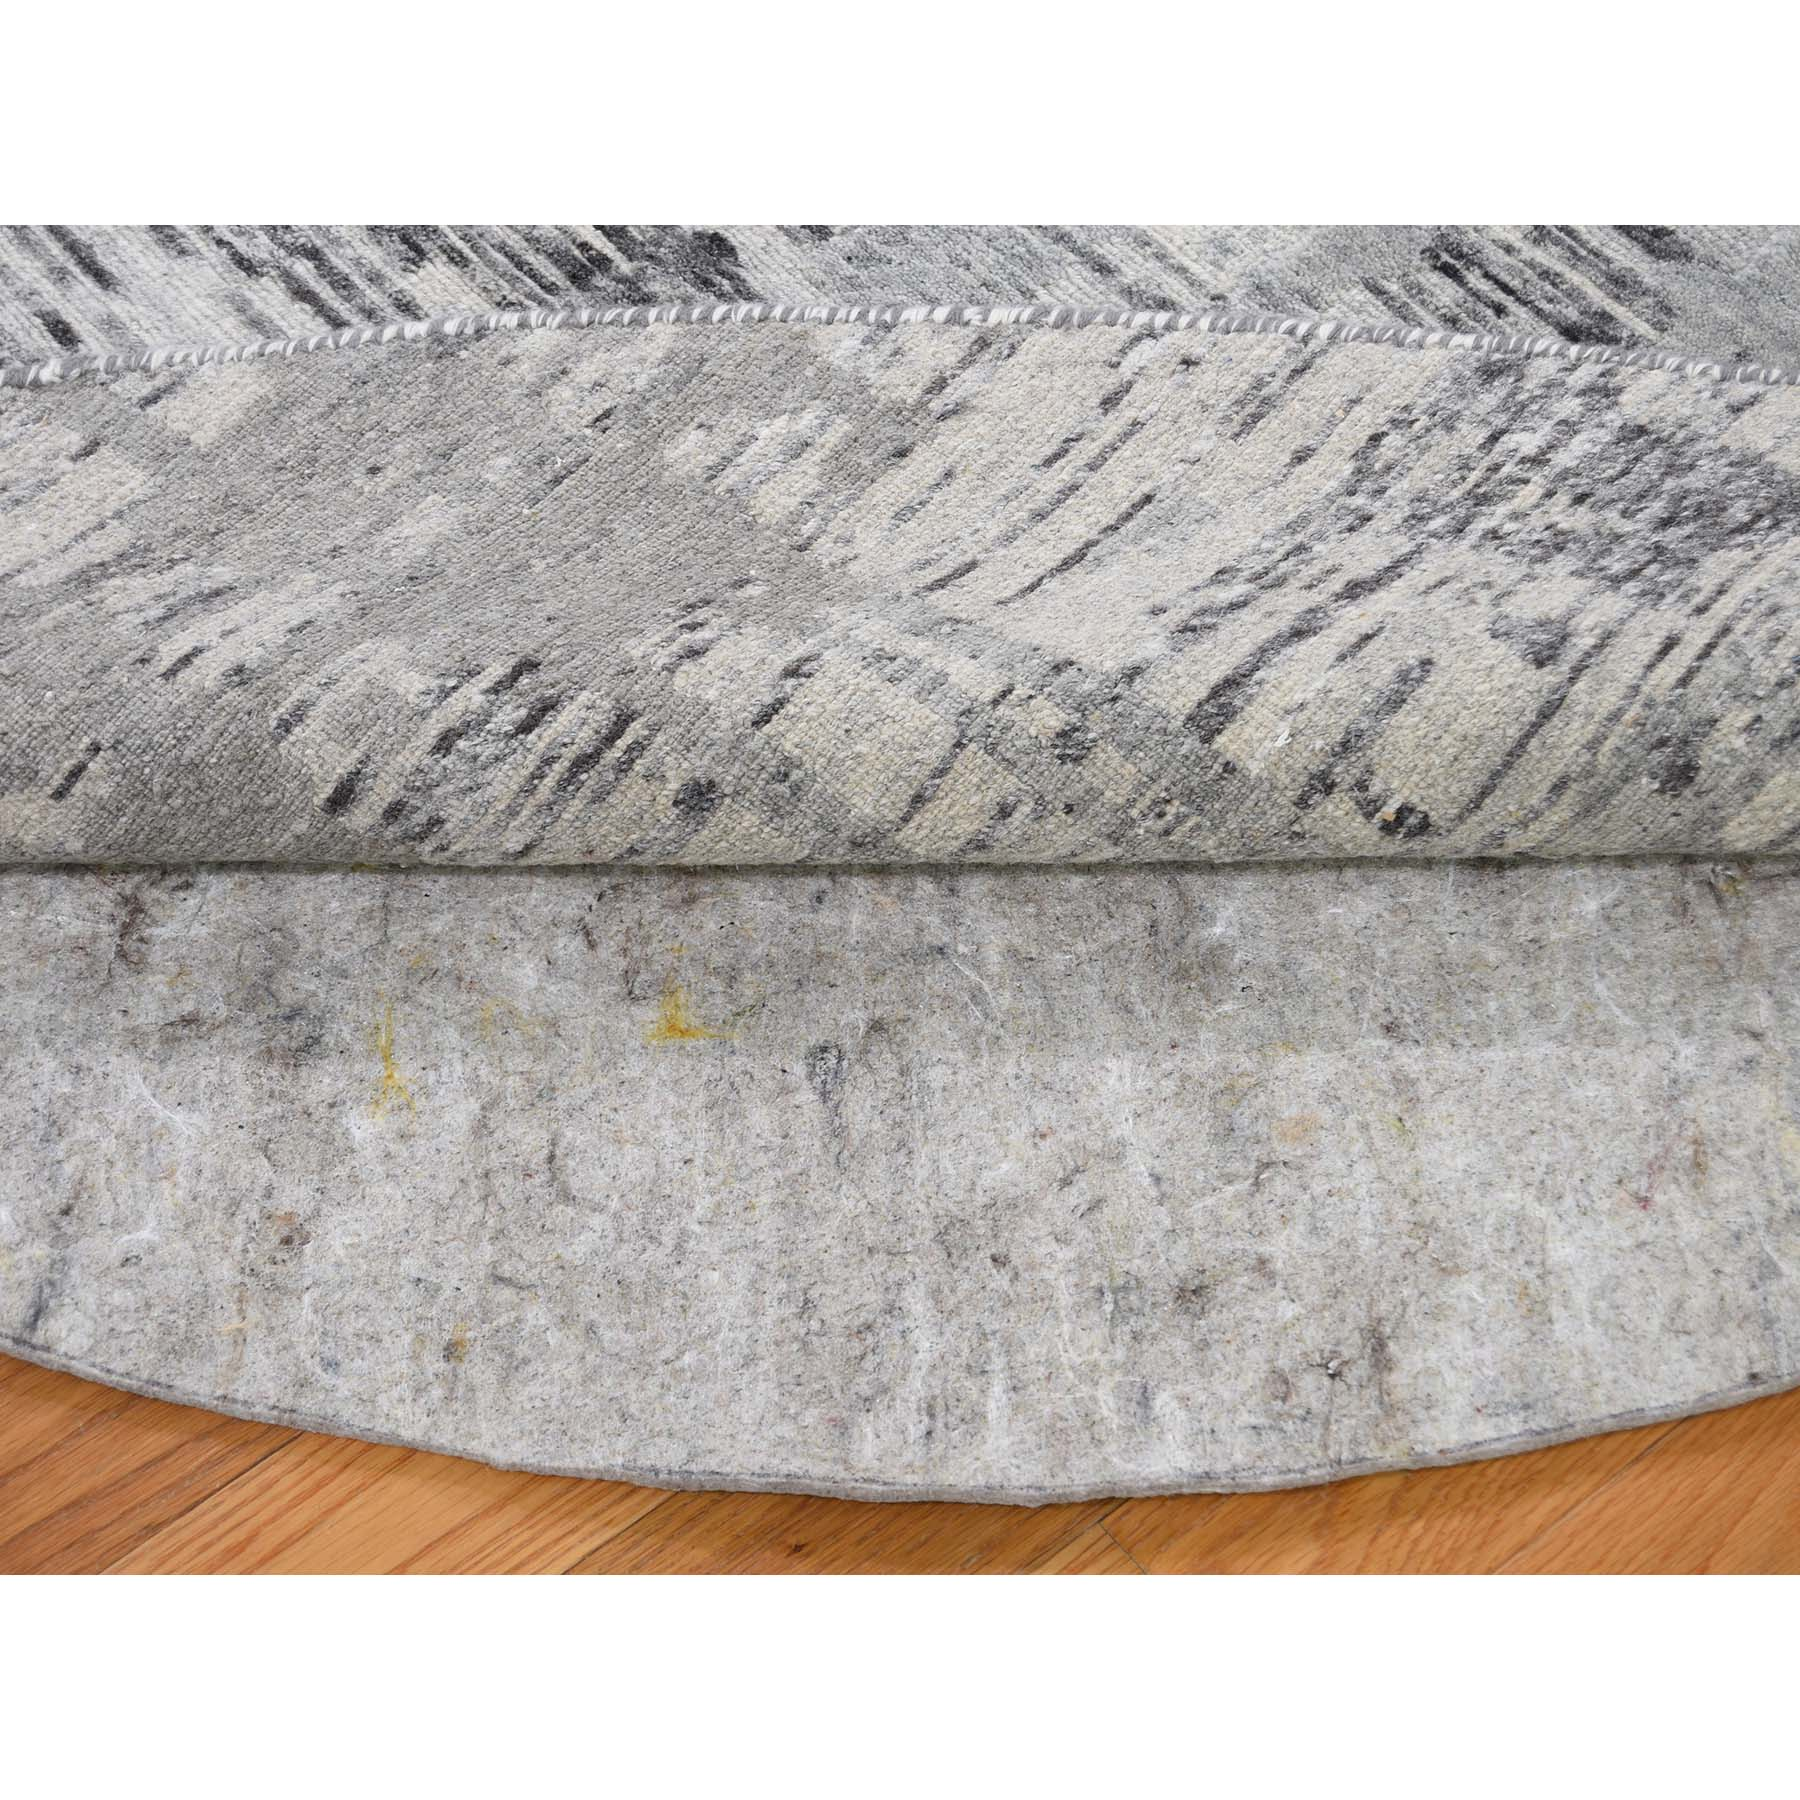 10'x10' Undyed Natural Wool Hand Spun Yarn Oriental Hand-Knotted Rug